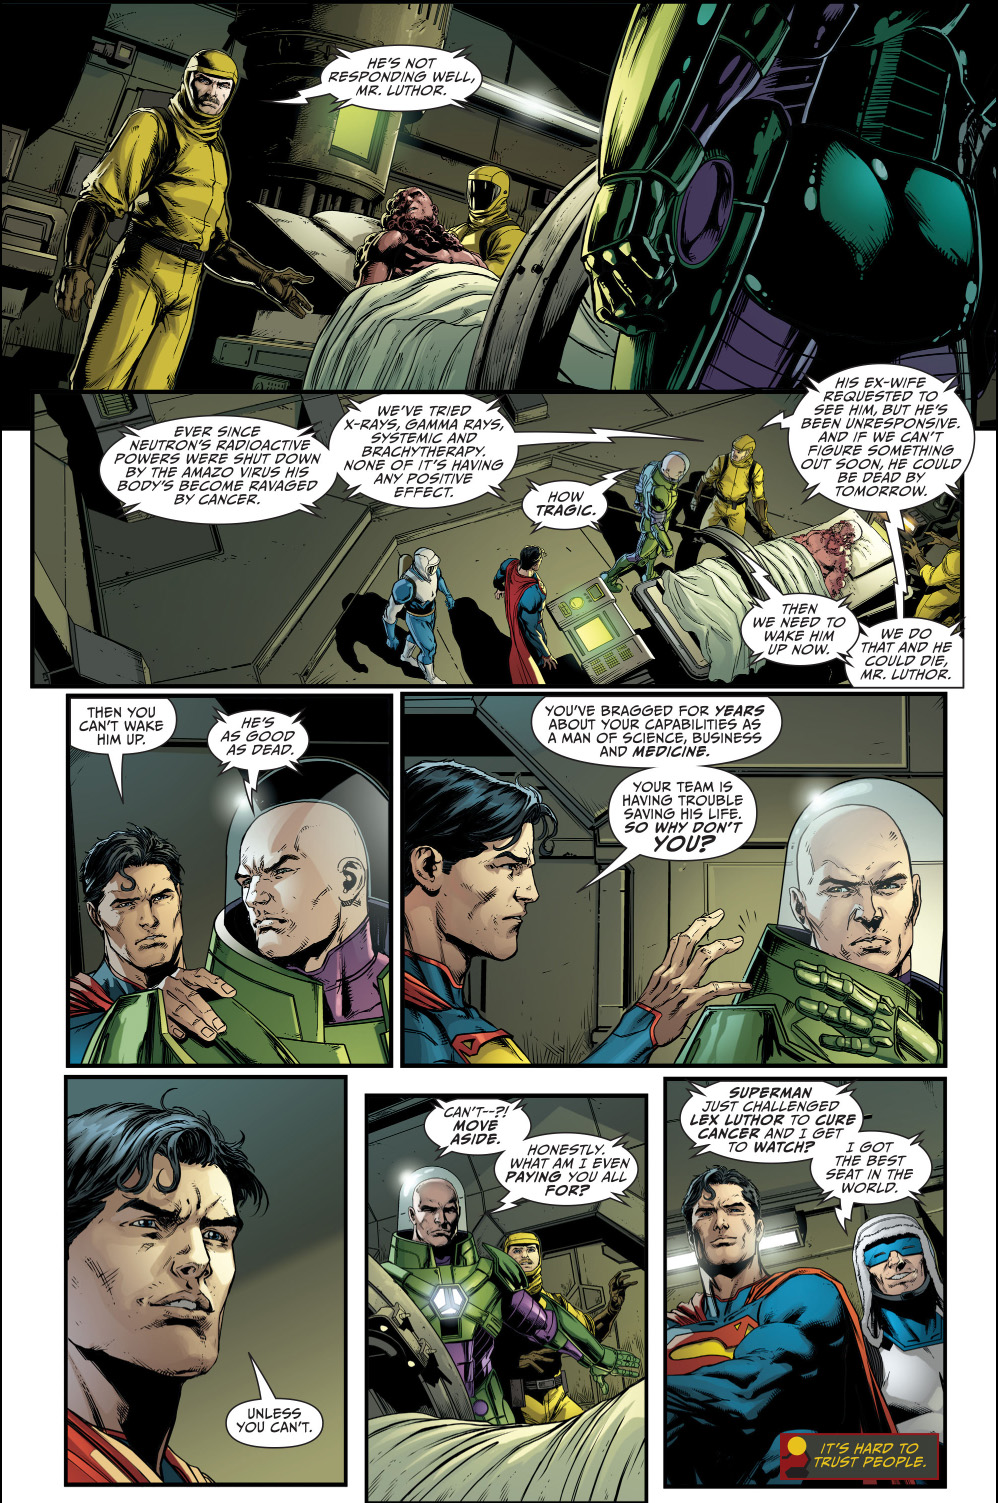 superman challenges lex luthor to cure cancer